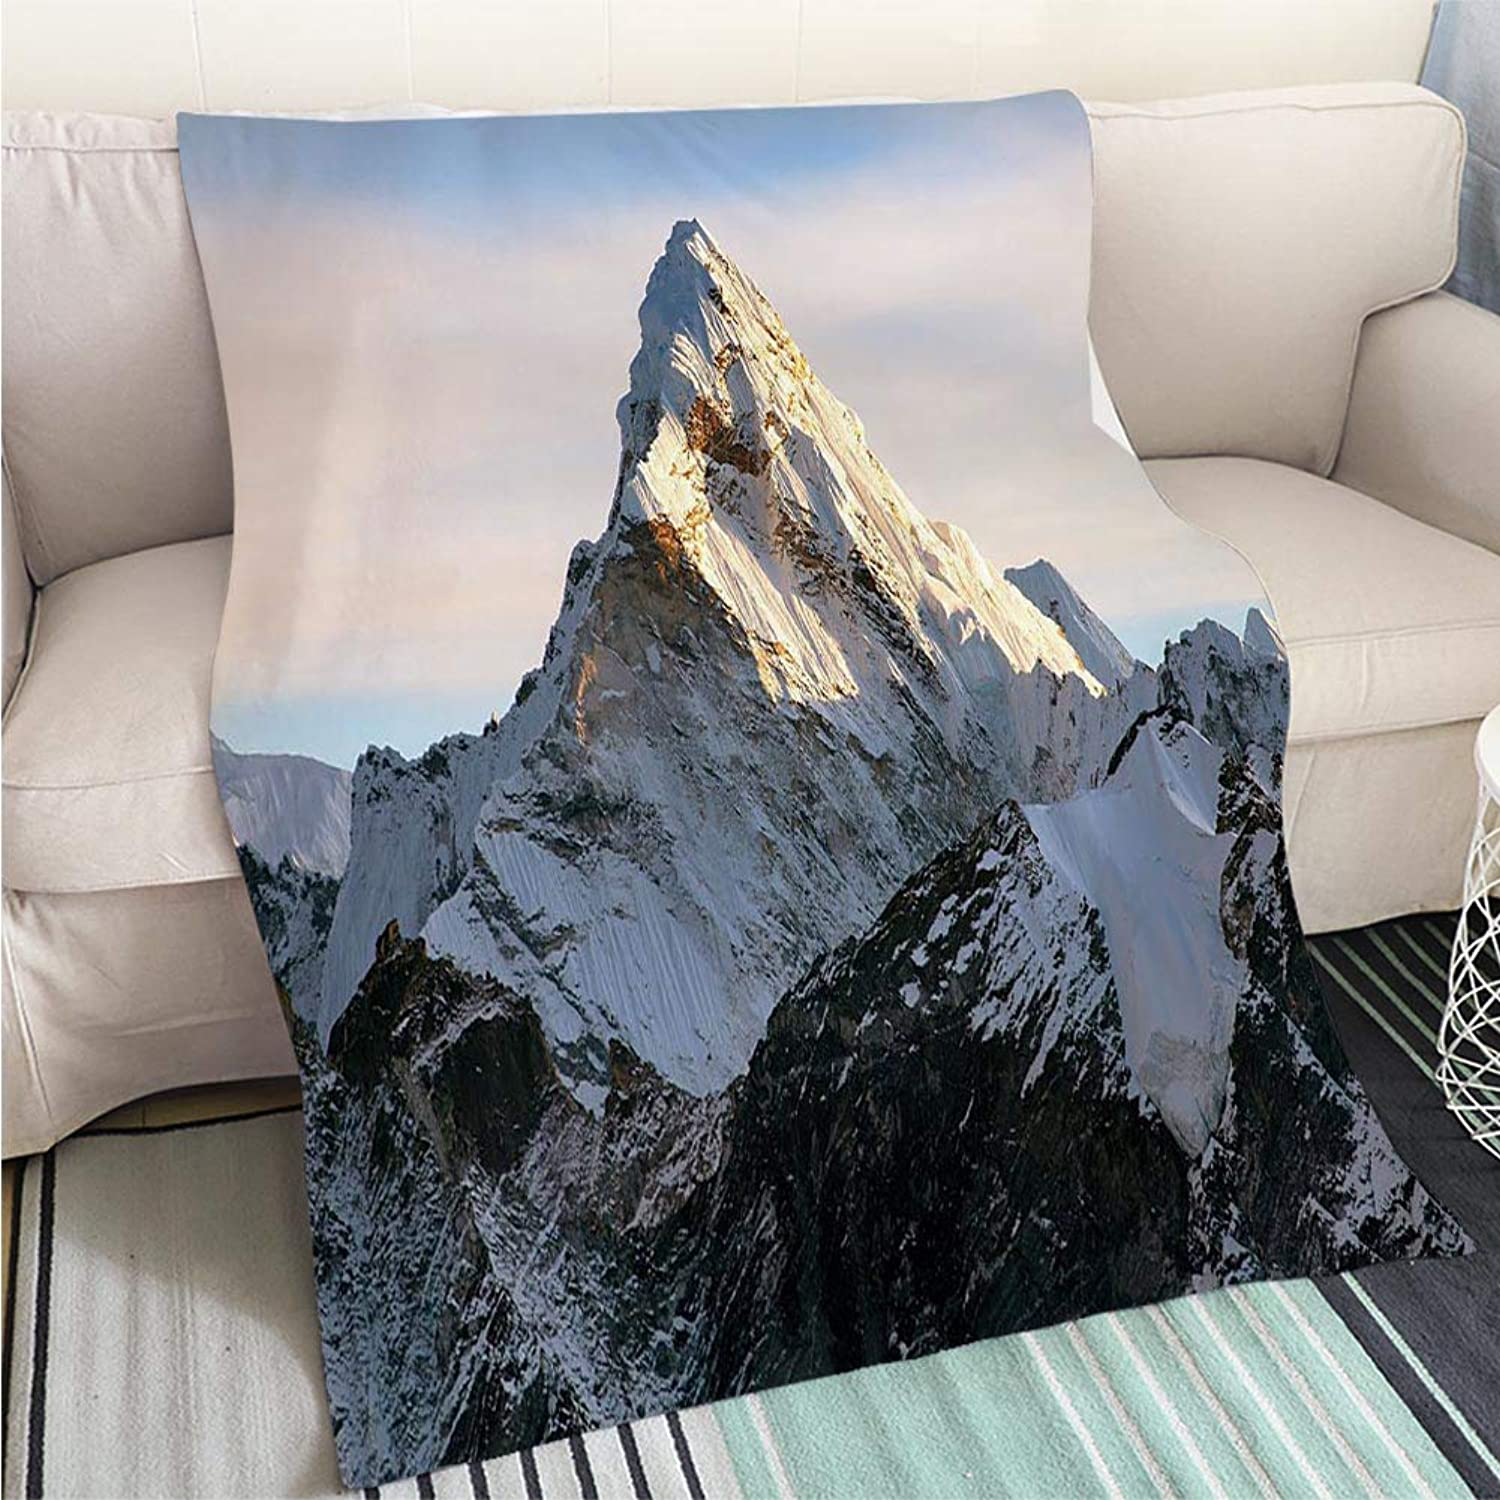 BEICICI Comforter Multicolor Bed or Couch Evening View of AMA Dablam Living Room Bedroom Warm Blanket